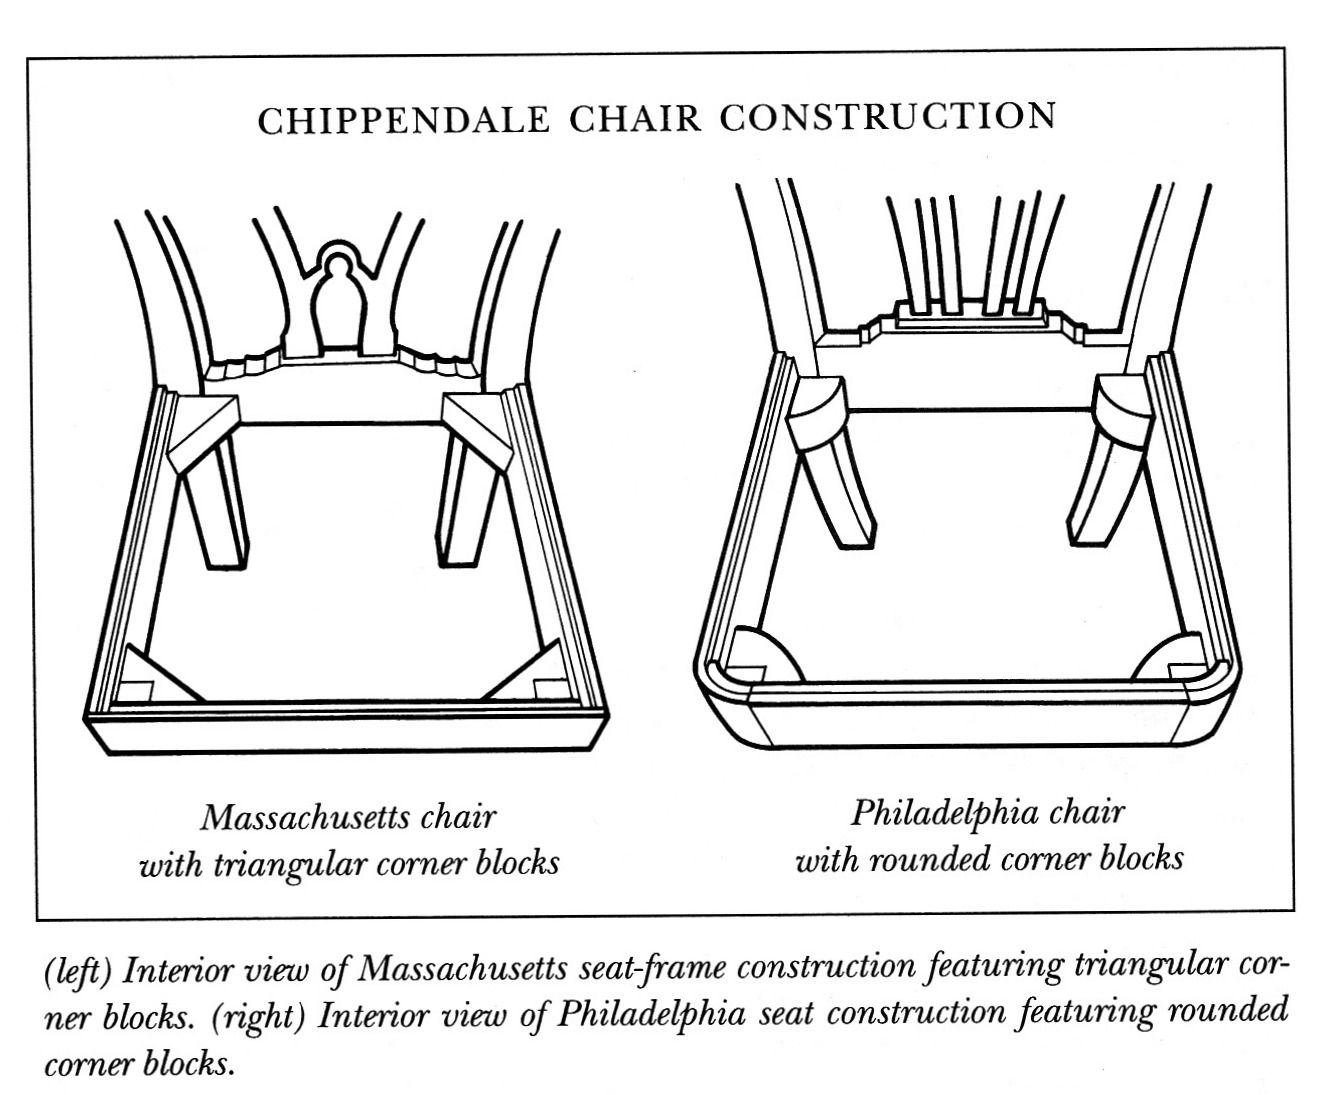 Chair antique queen anne chair the buzz on antiques antique chairs 101 - Diagram Of Chippendale Chair Construction Georgian Furnitureantique Furniturechippendale Chairschair Backsqueen Annewoodworking